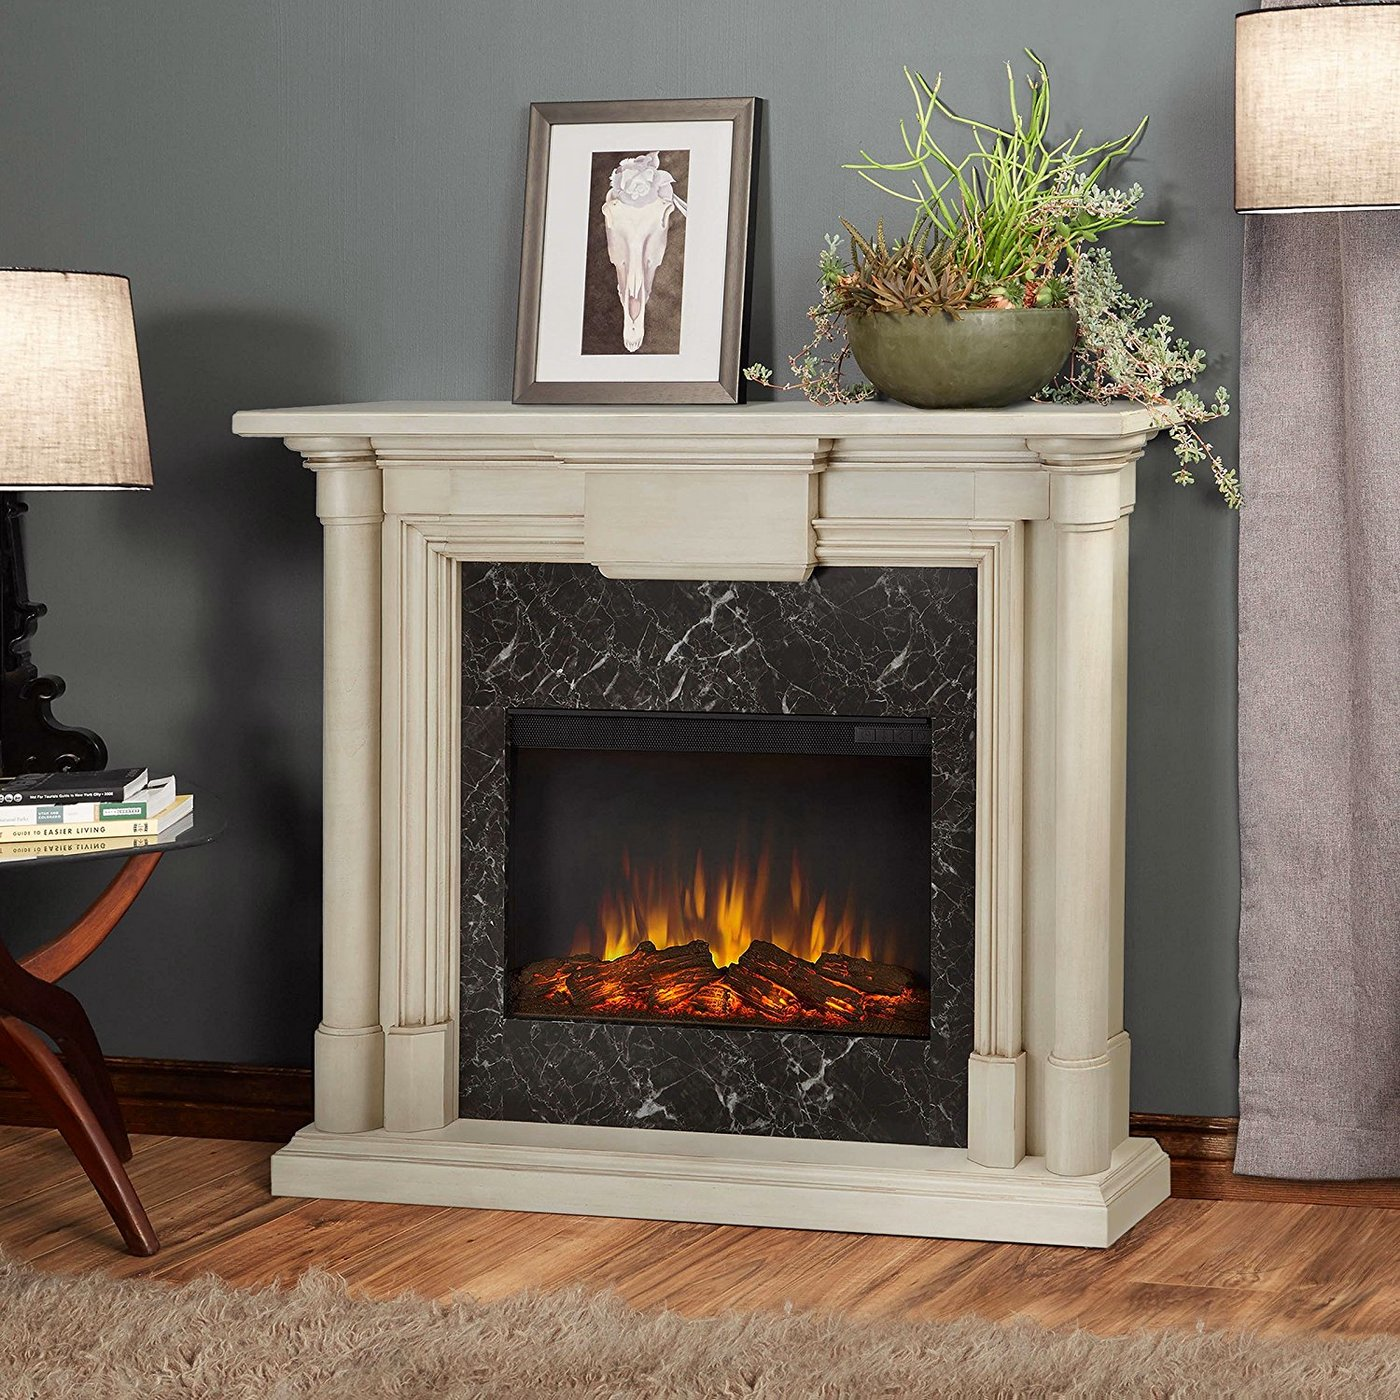 Maxwell Electric Heater Led Fireplace In Antique White, 4700btu, 48x40